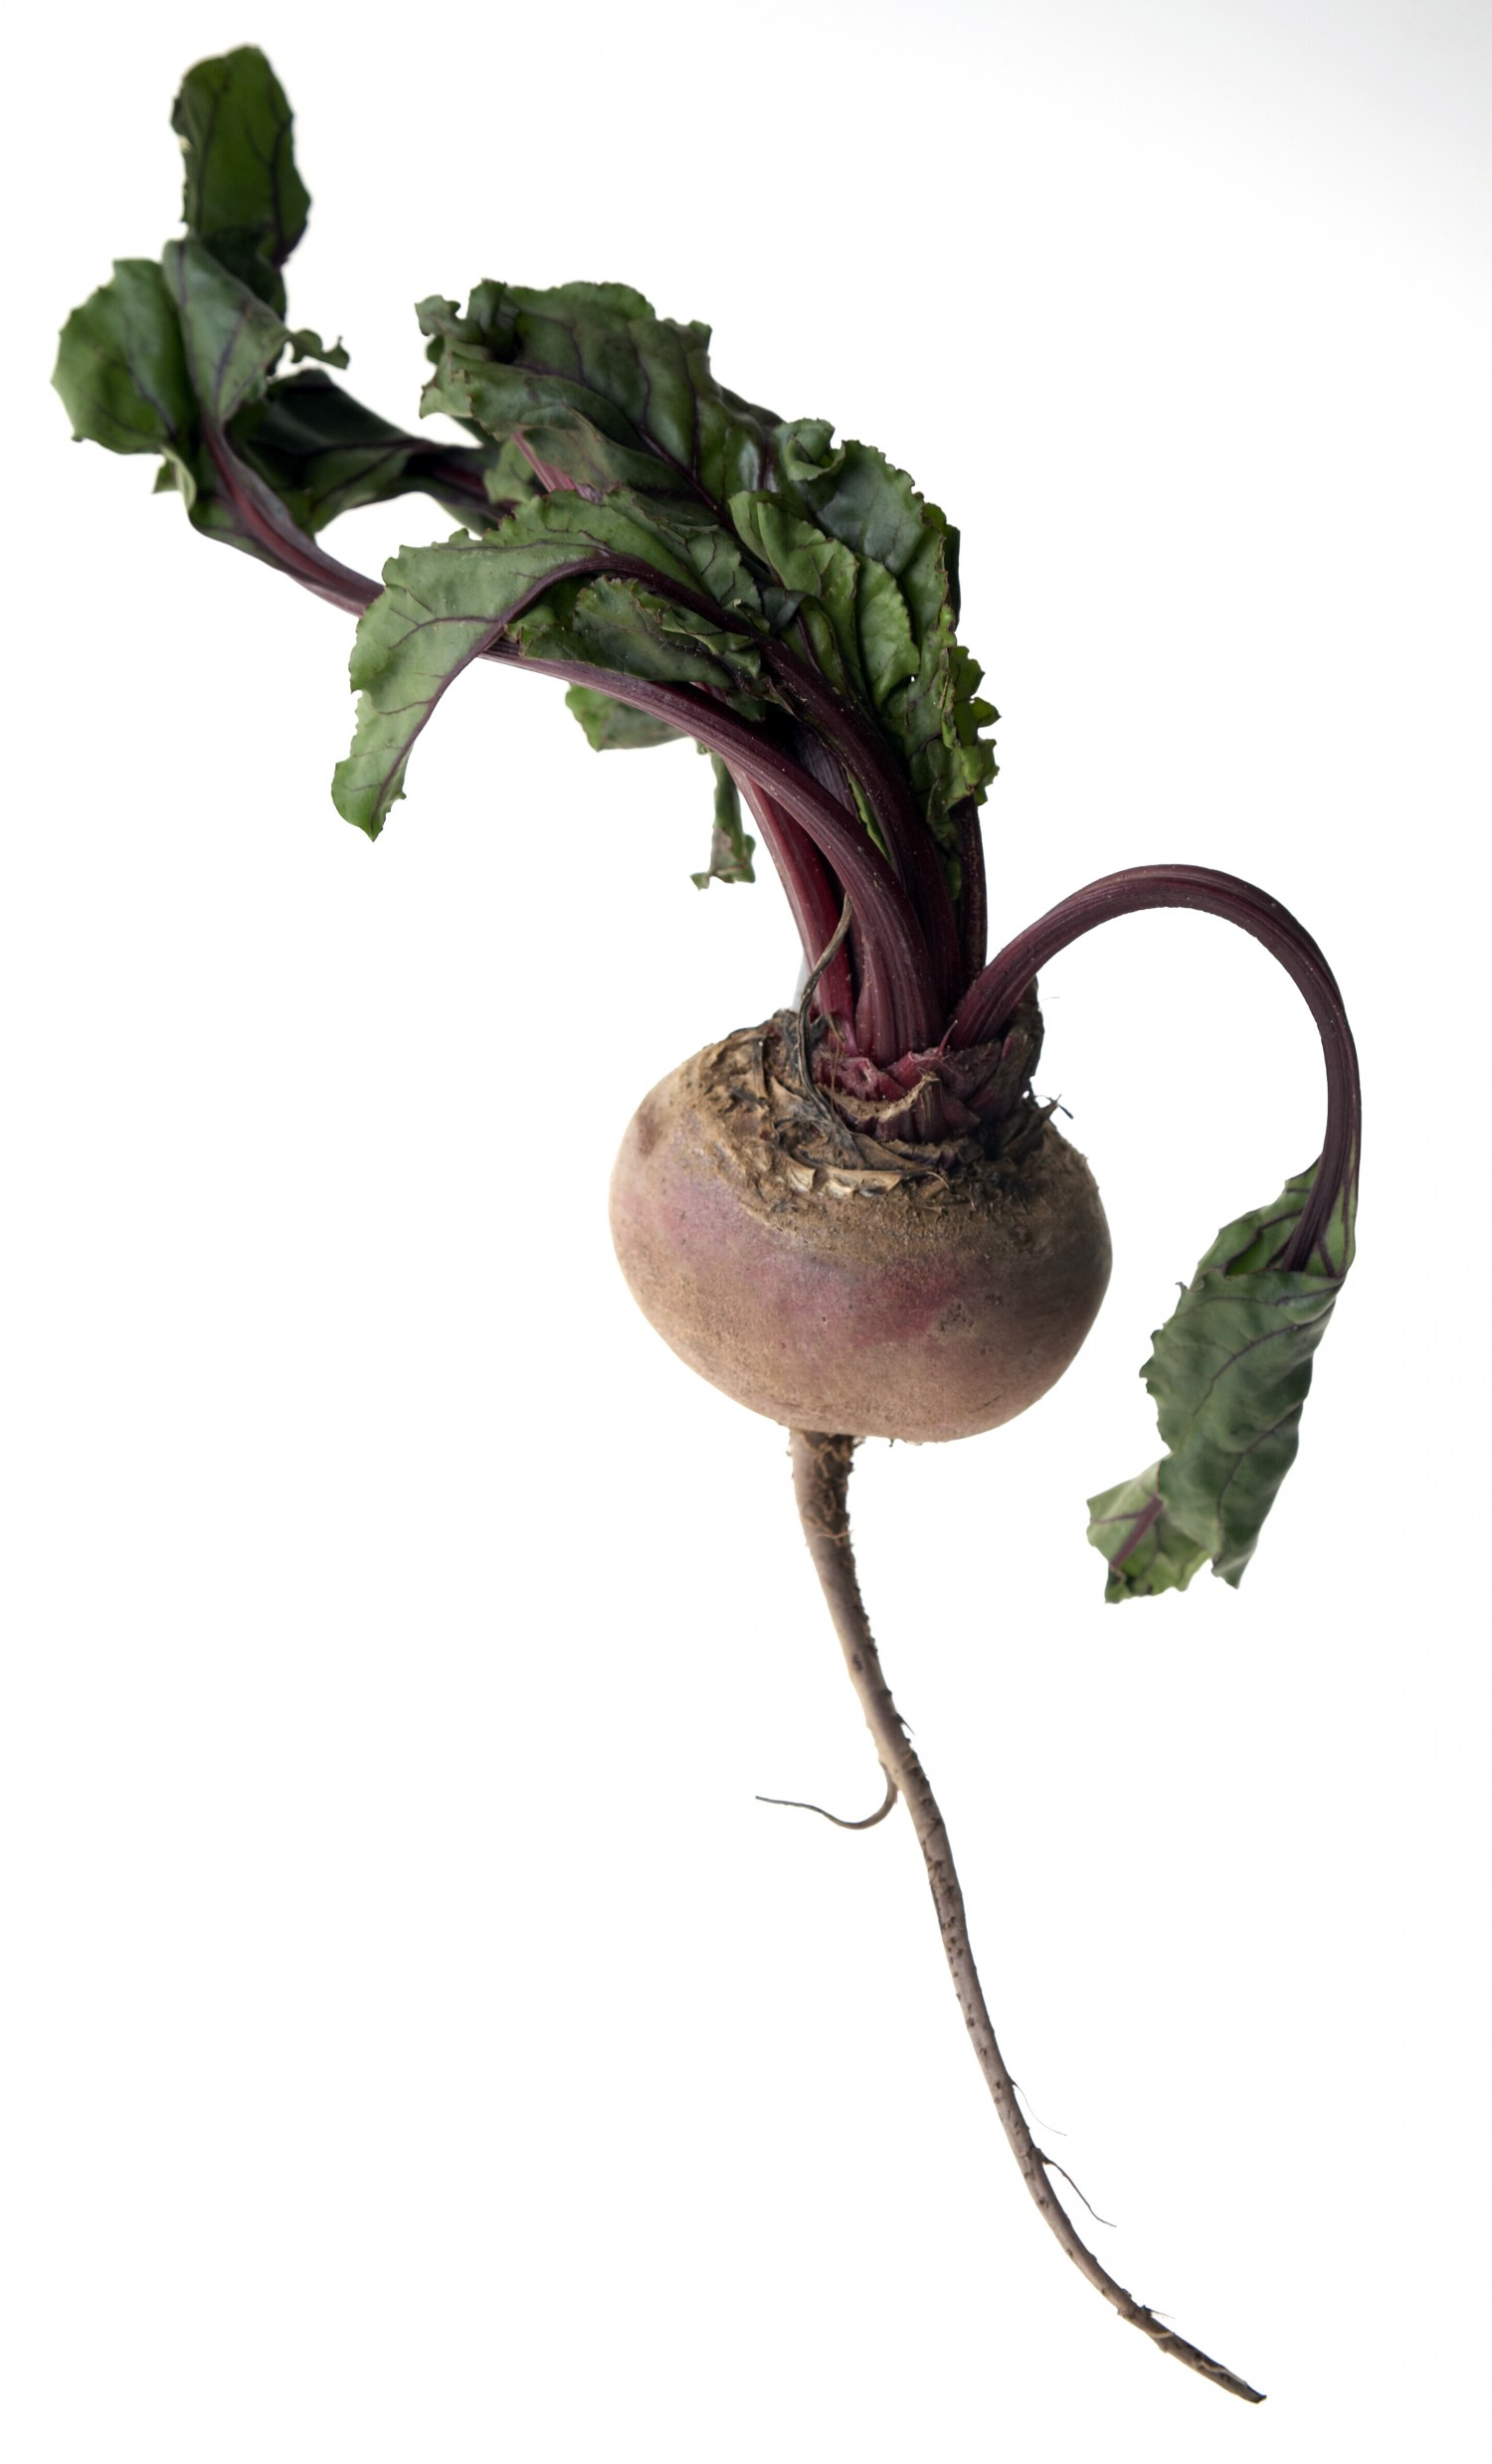 Beetroot with leaves and roots on white background